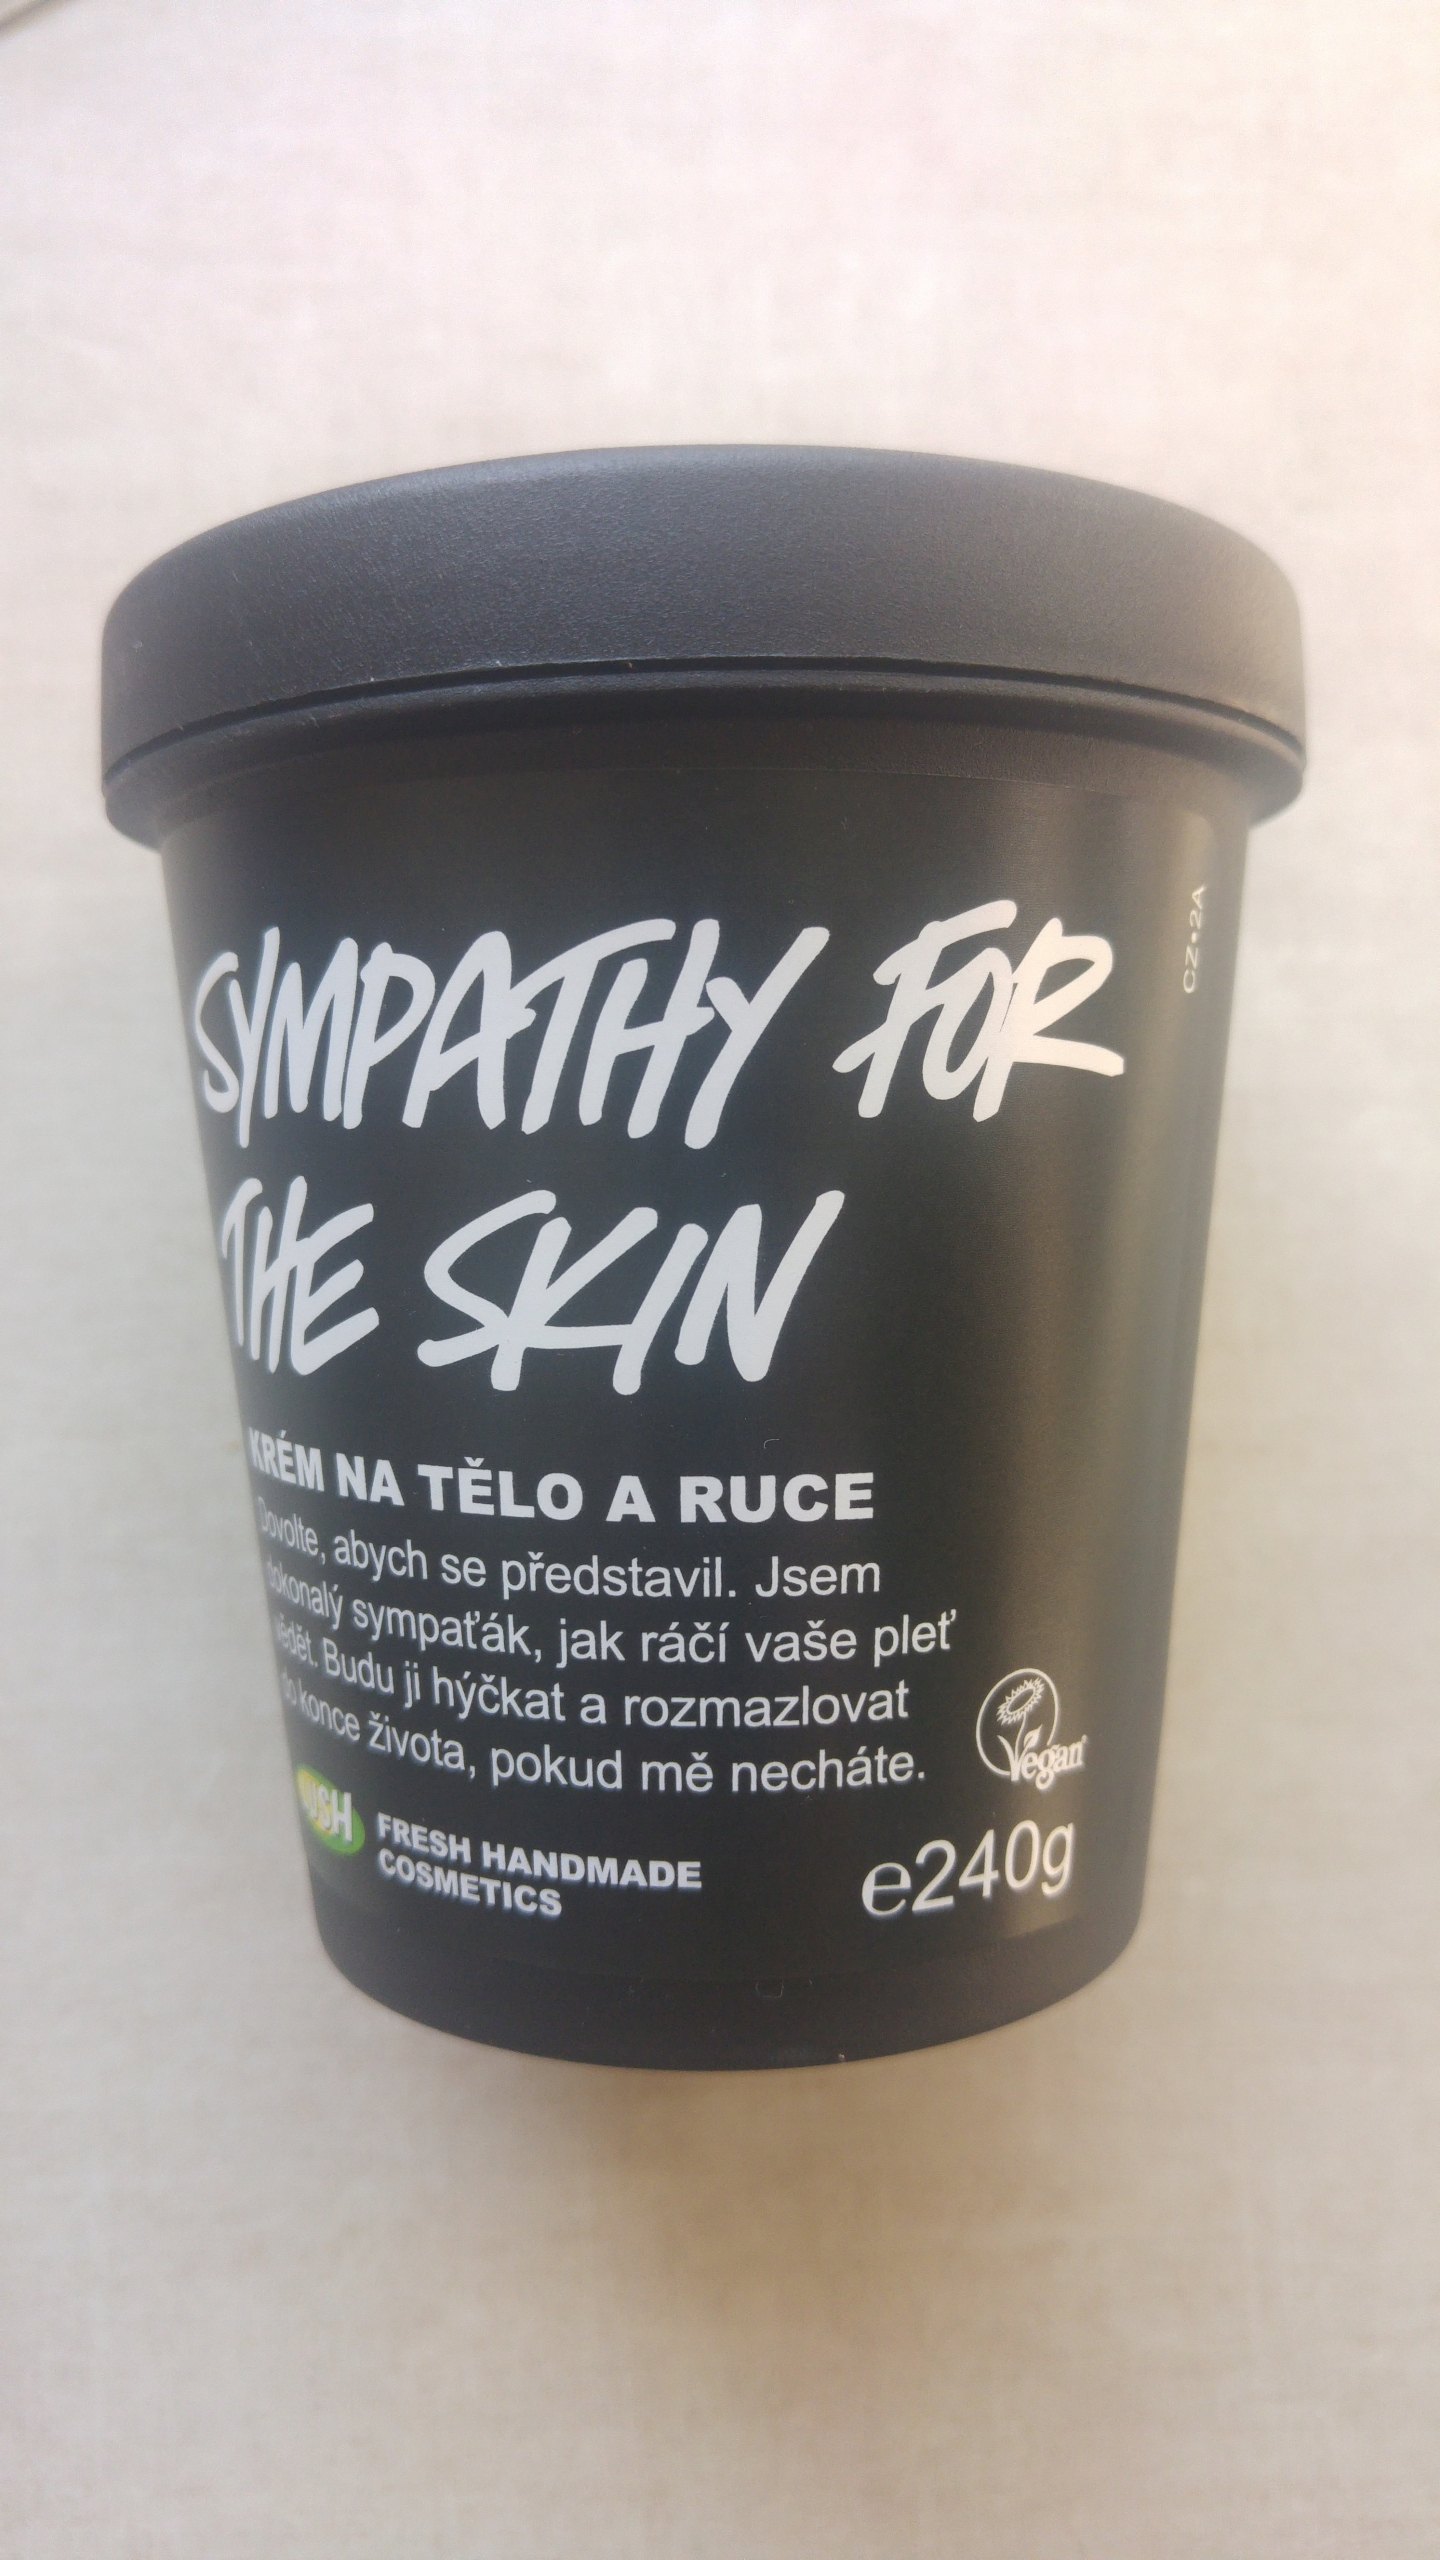 Sympathy For The Skin Lush body lotion 240g.